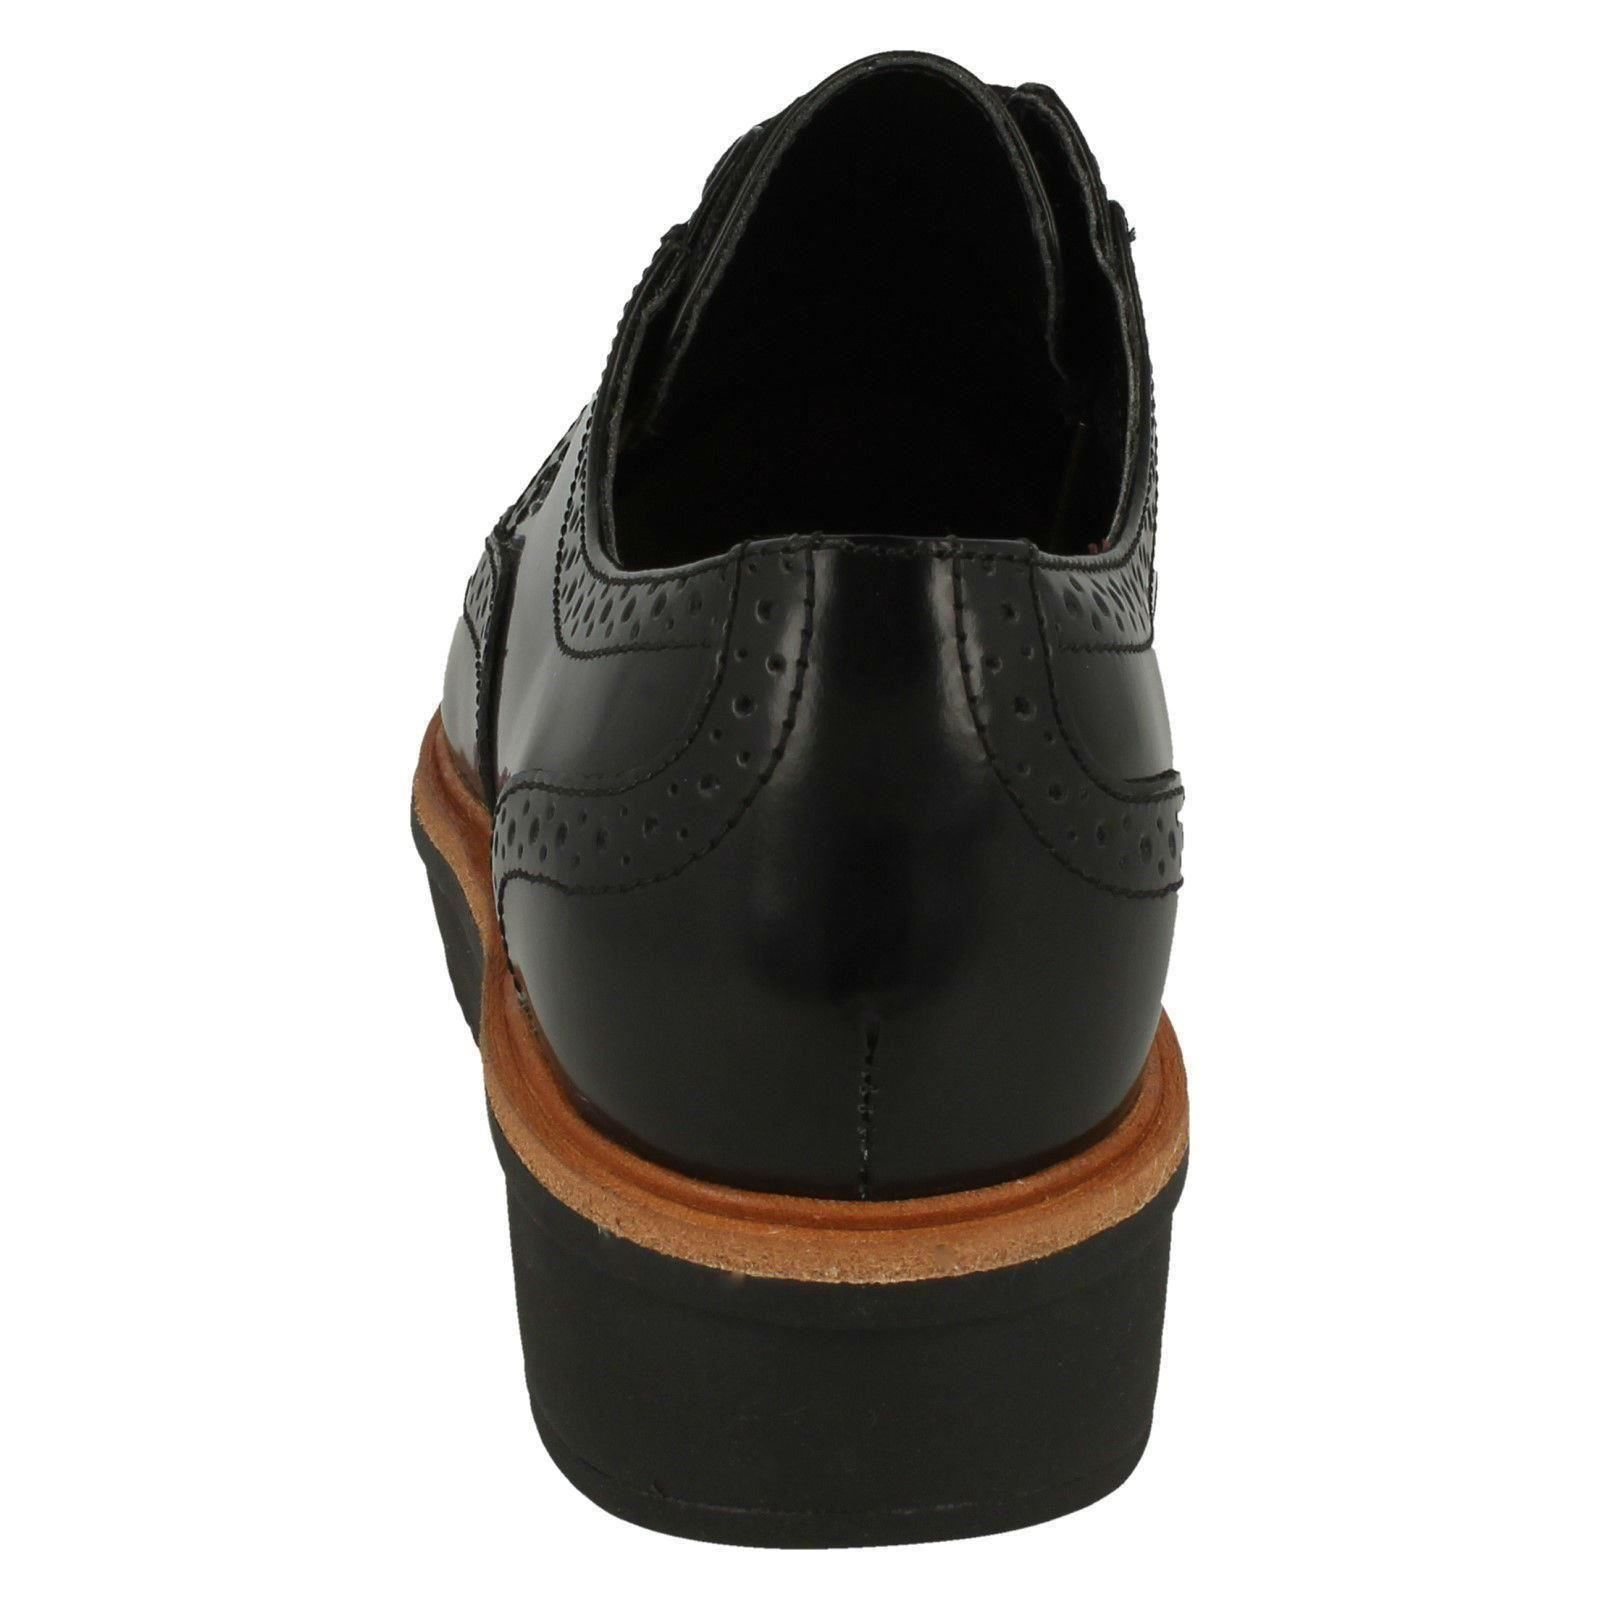 Ladies Clarks Casual Brogue Style Shoes /'Teadale Maira/'